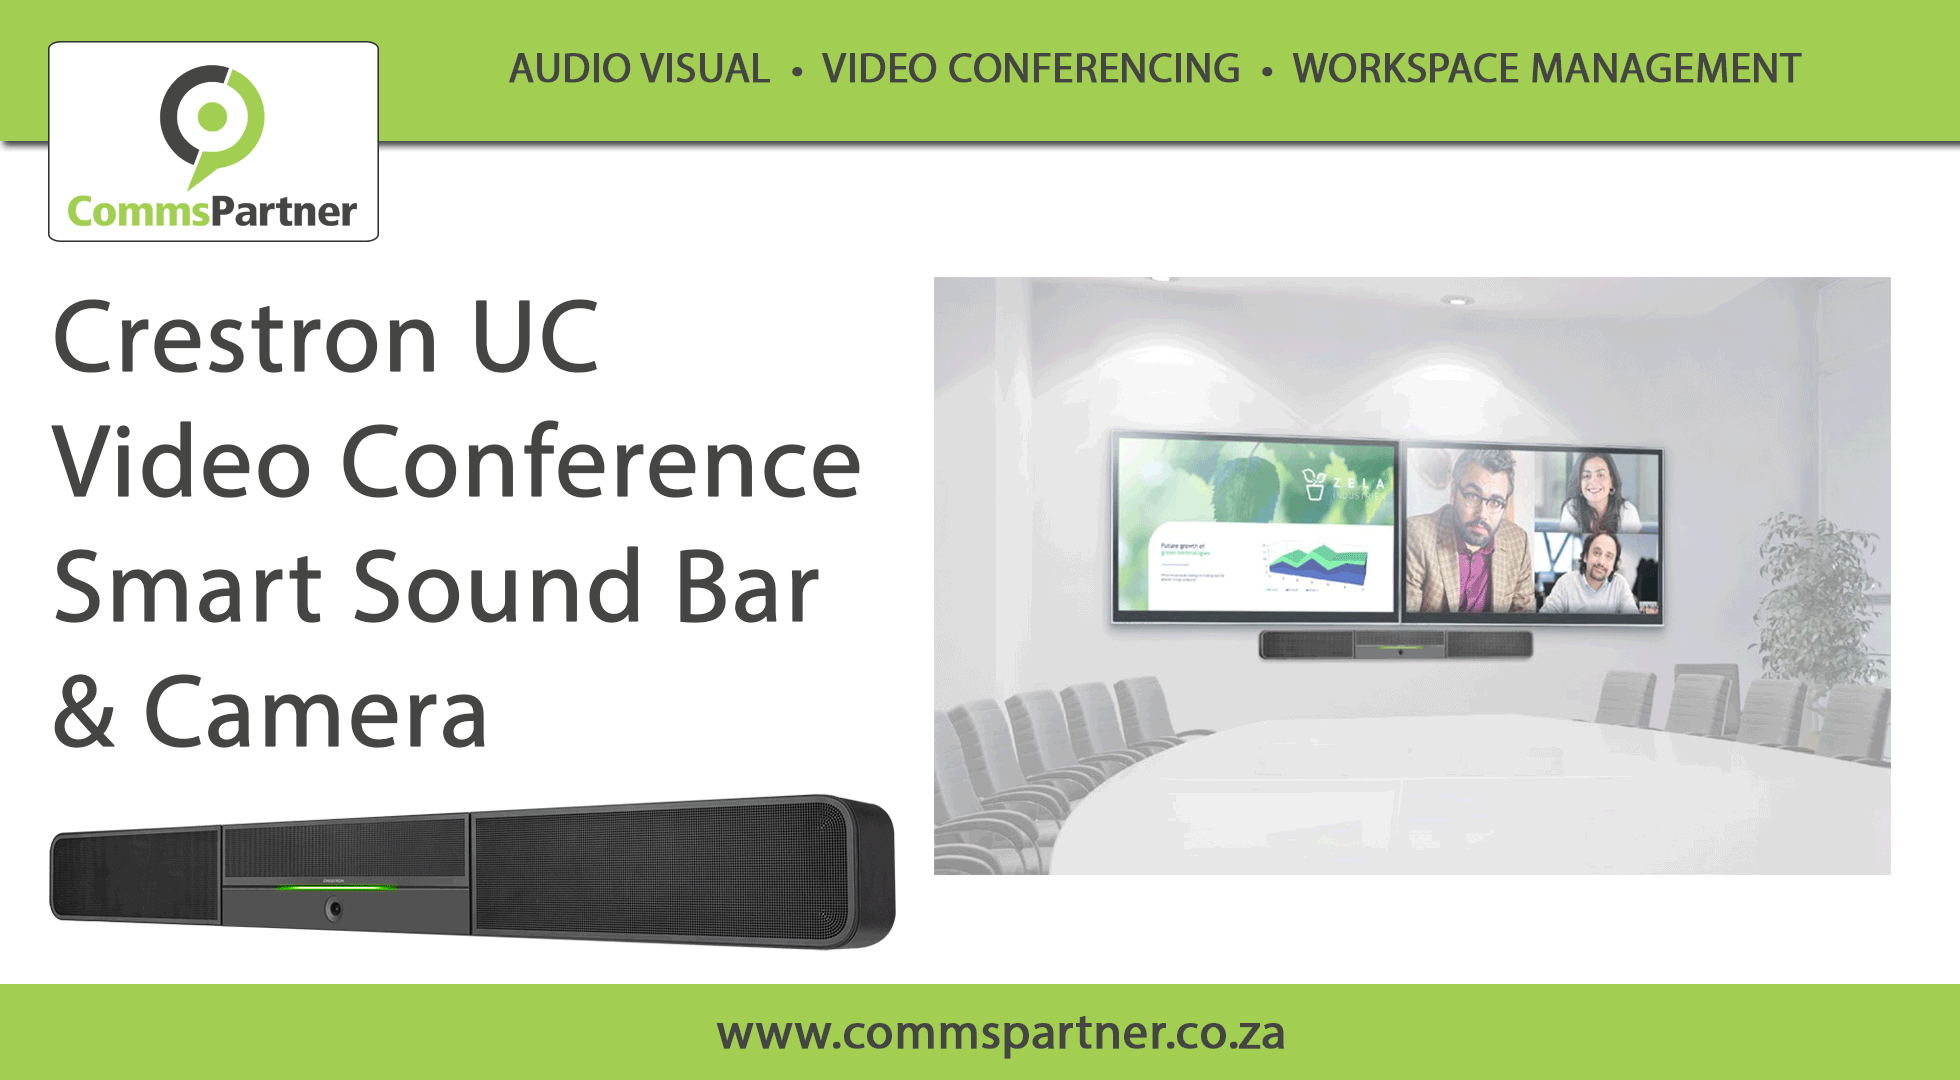 Crestron UC Video Conference Smart Sound Bar & Camera